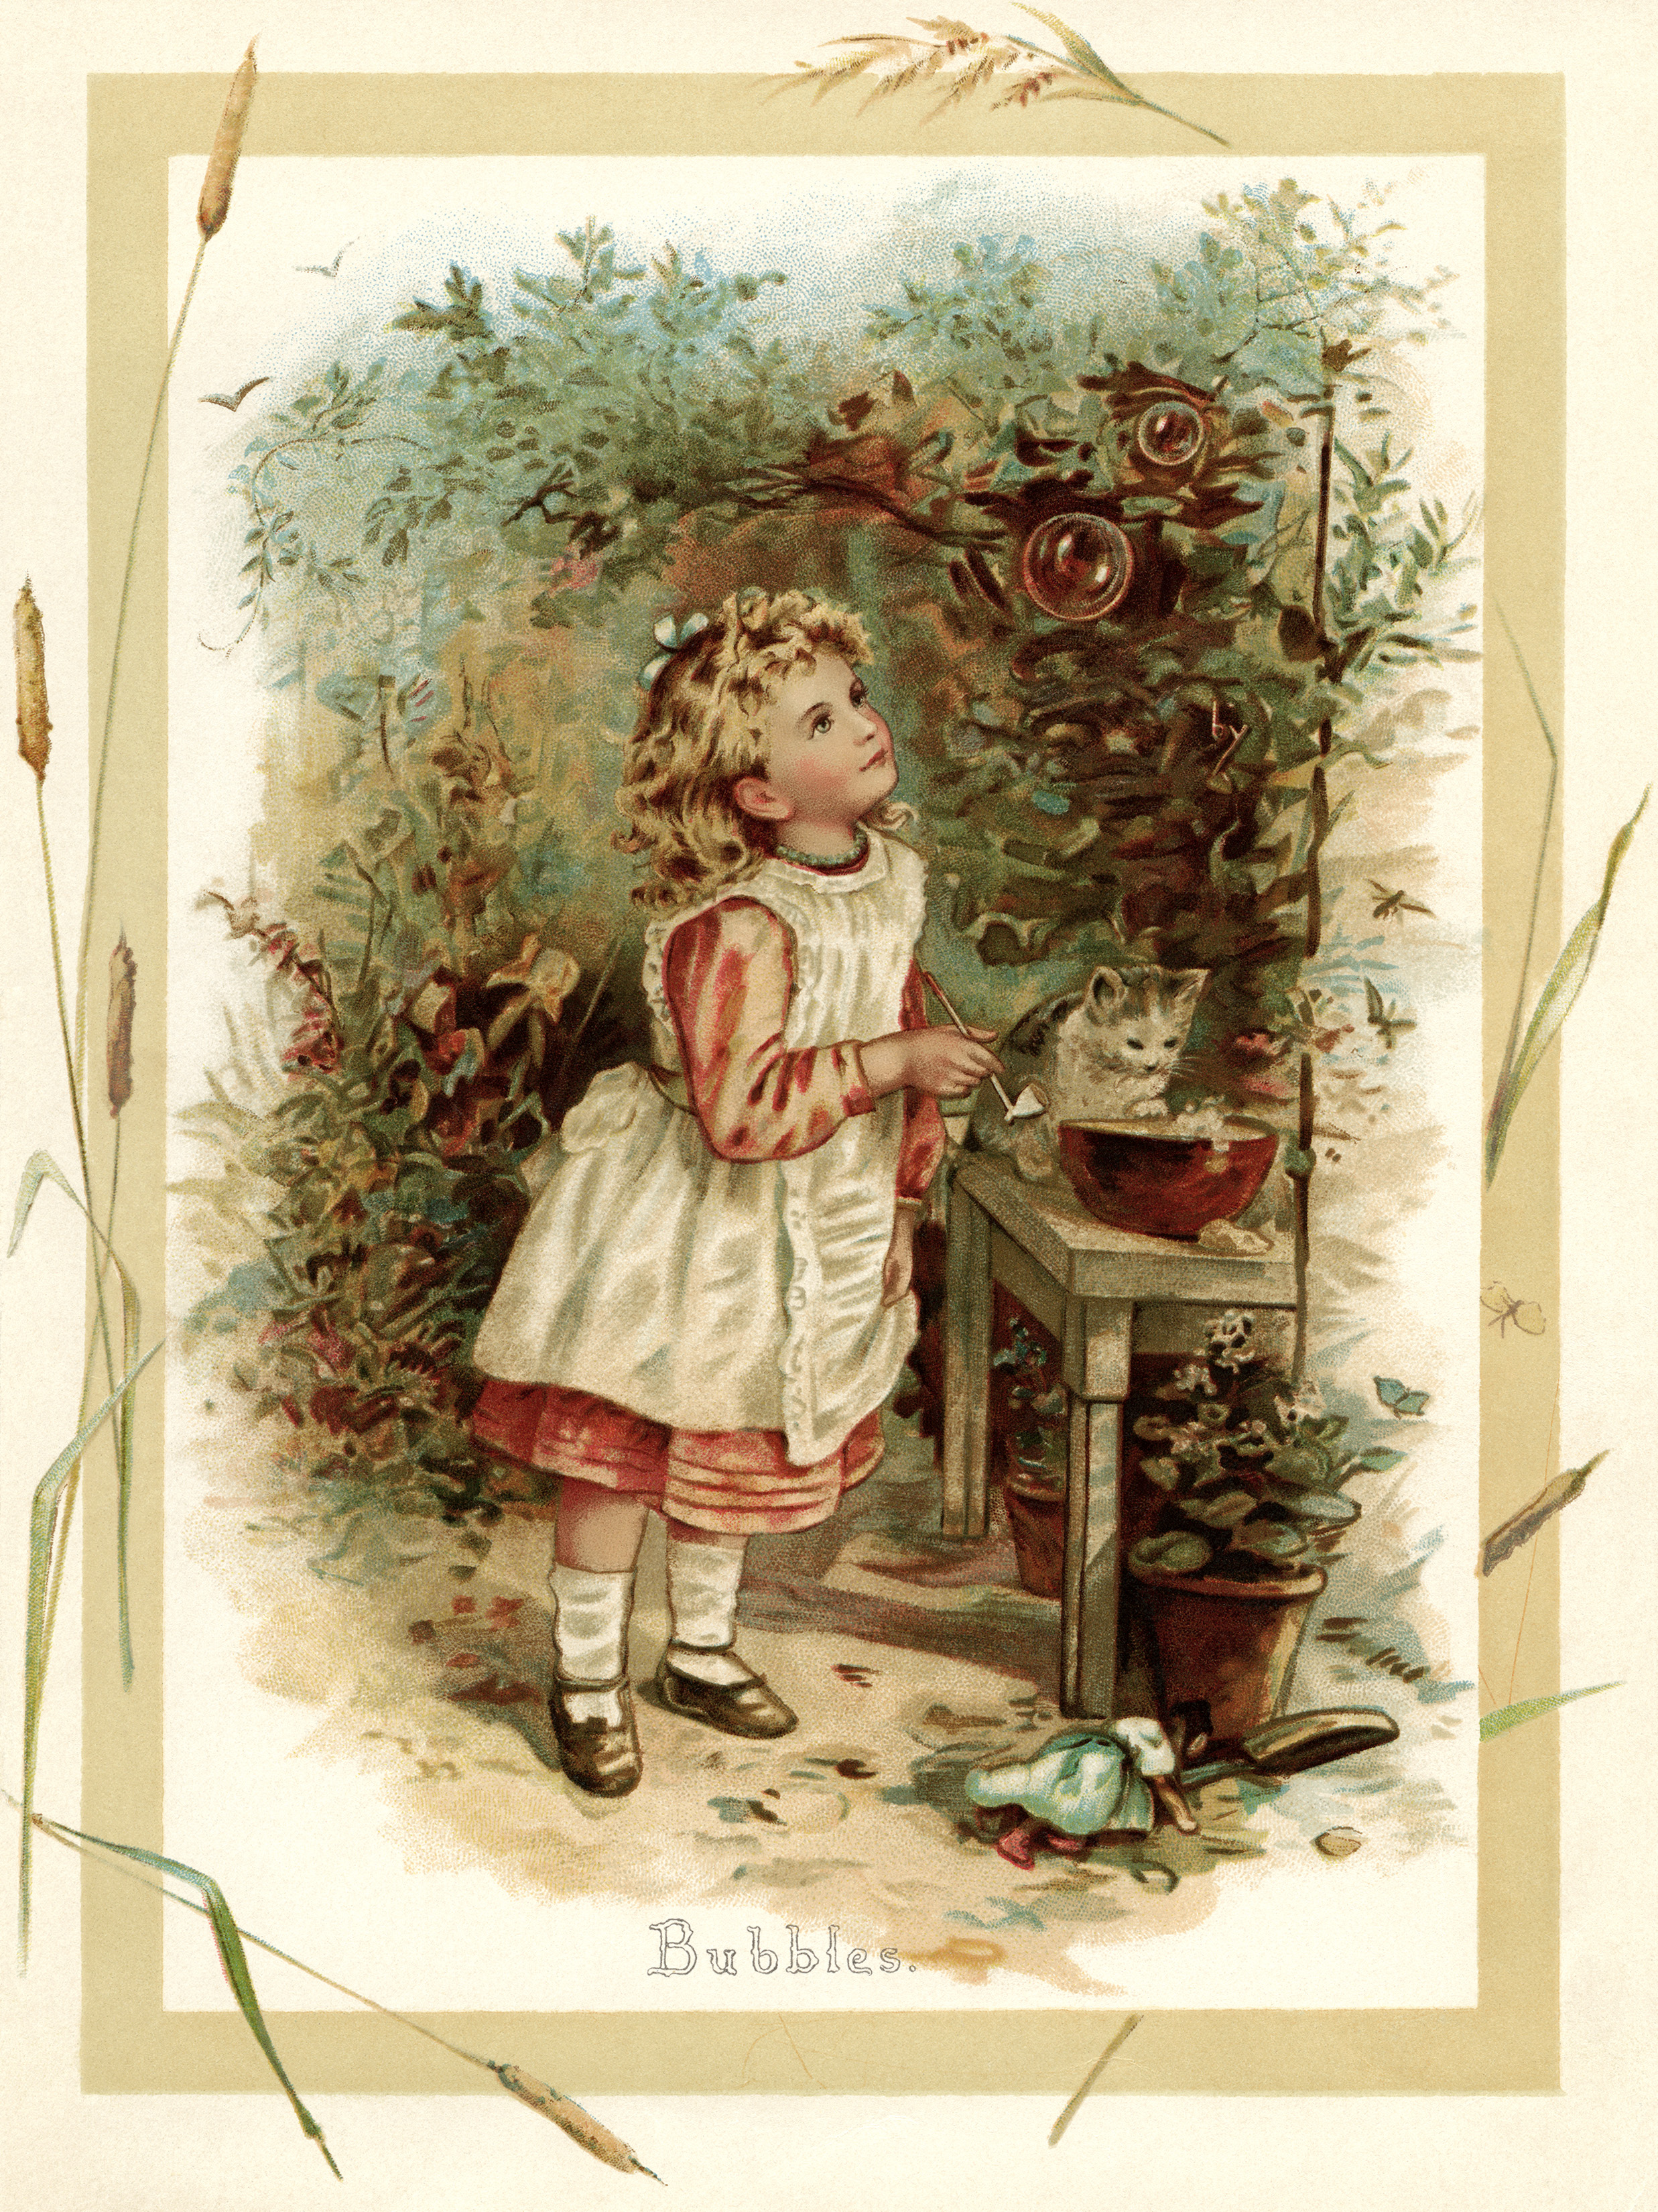 vintage storybook illustration, Victorian girl blowing bubbles, sunbeams and me, girl and kitten printable, bubble blowing fun